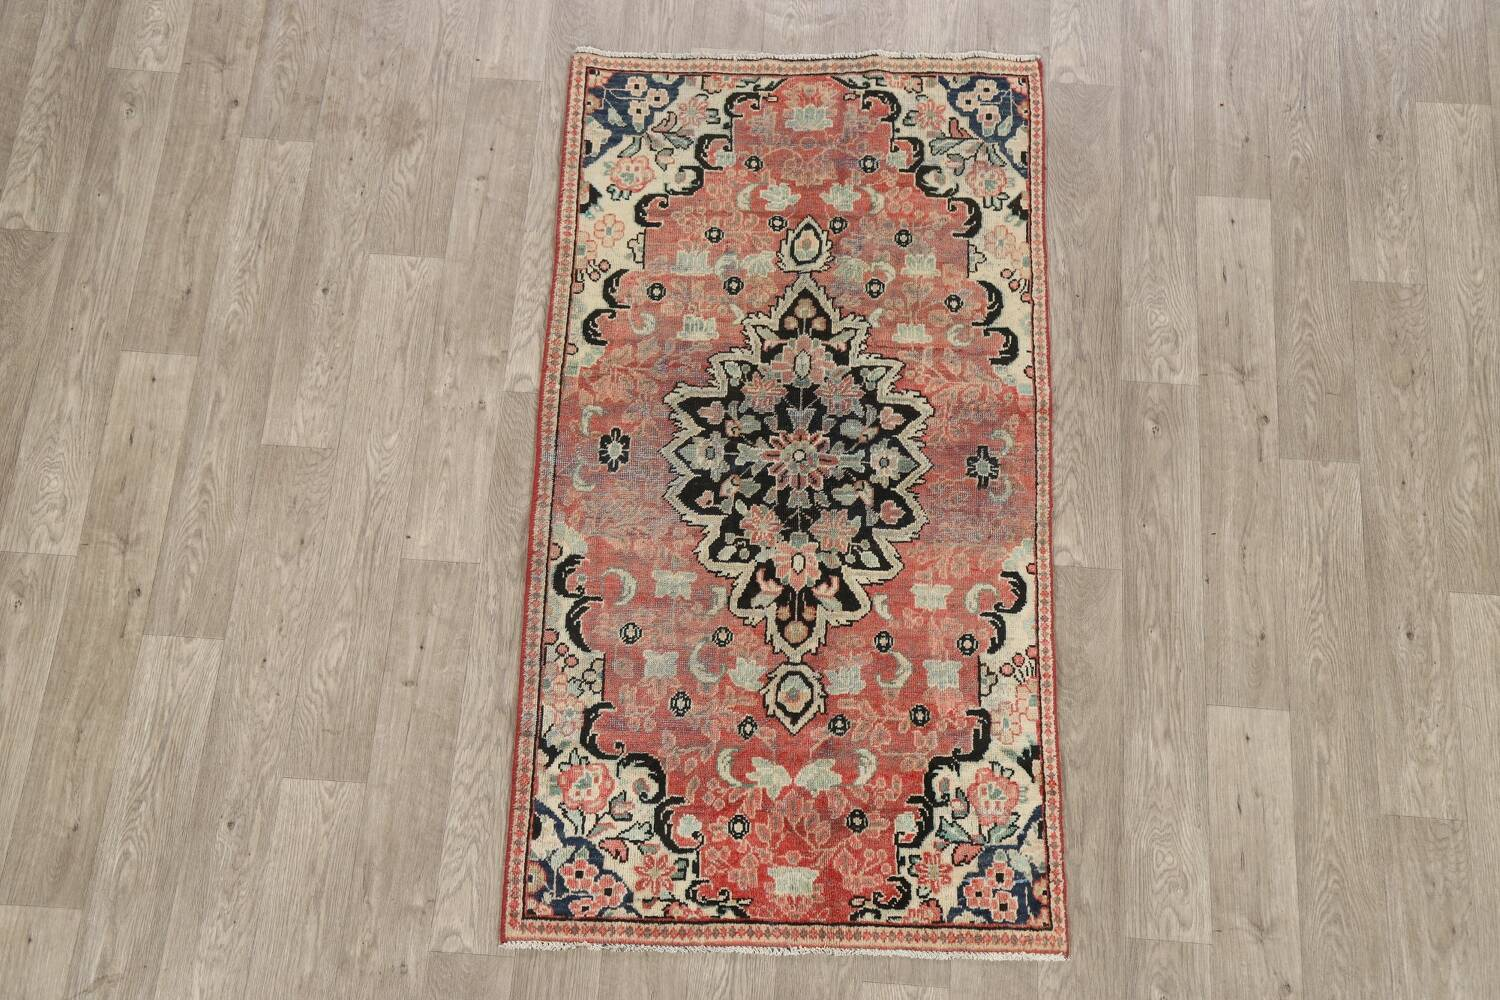 Antique Floral Mahal Persian Area Rug 3x6 image 2